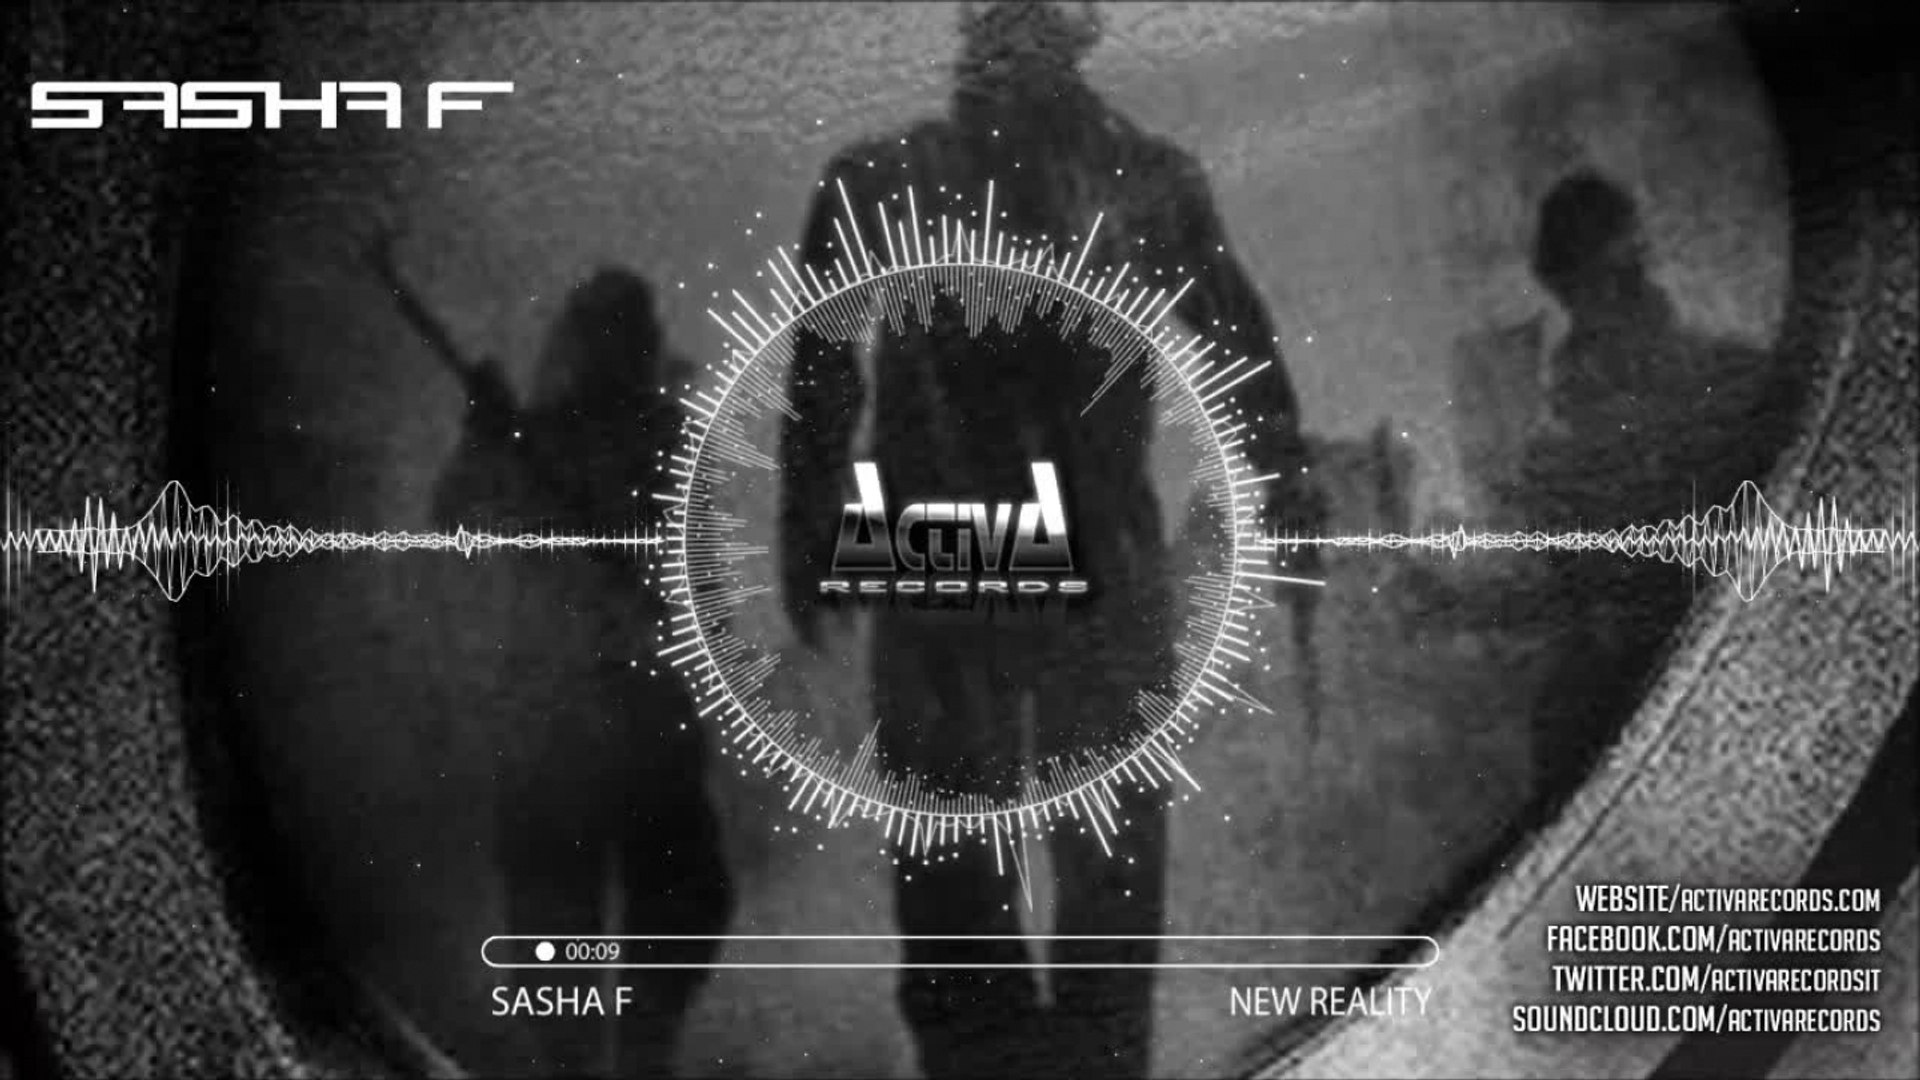 Sasha F - New Reality (Original Mix) - Official Preview (Activa Records)